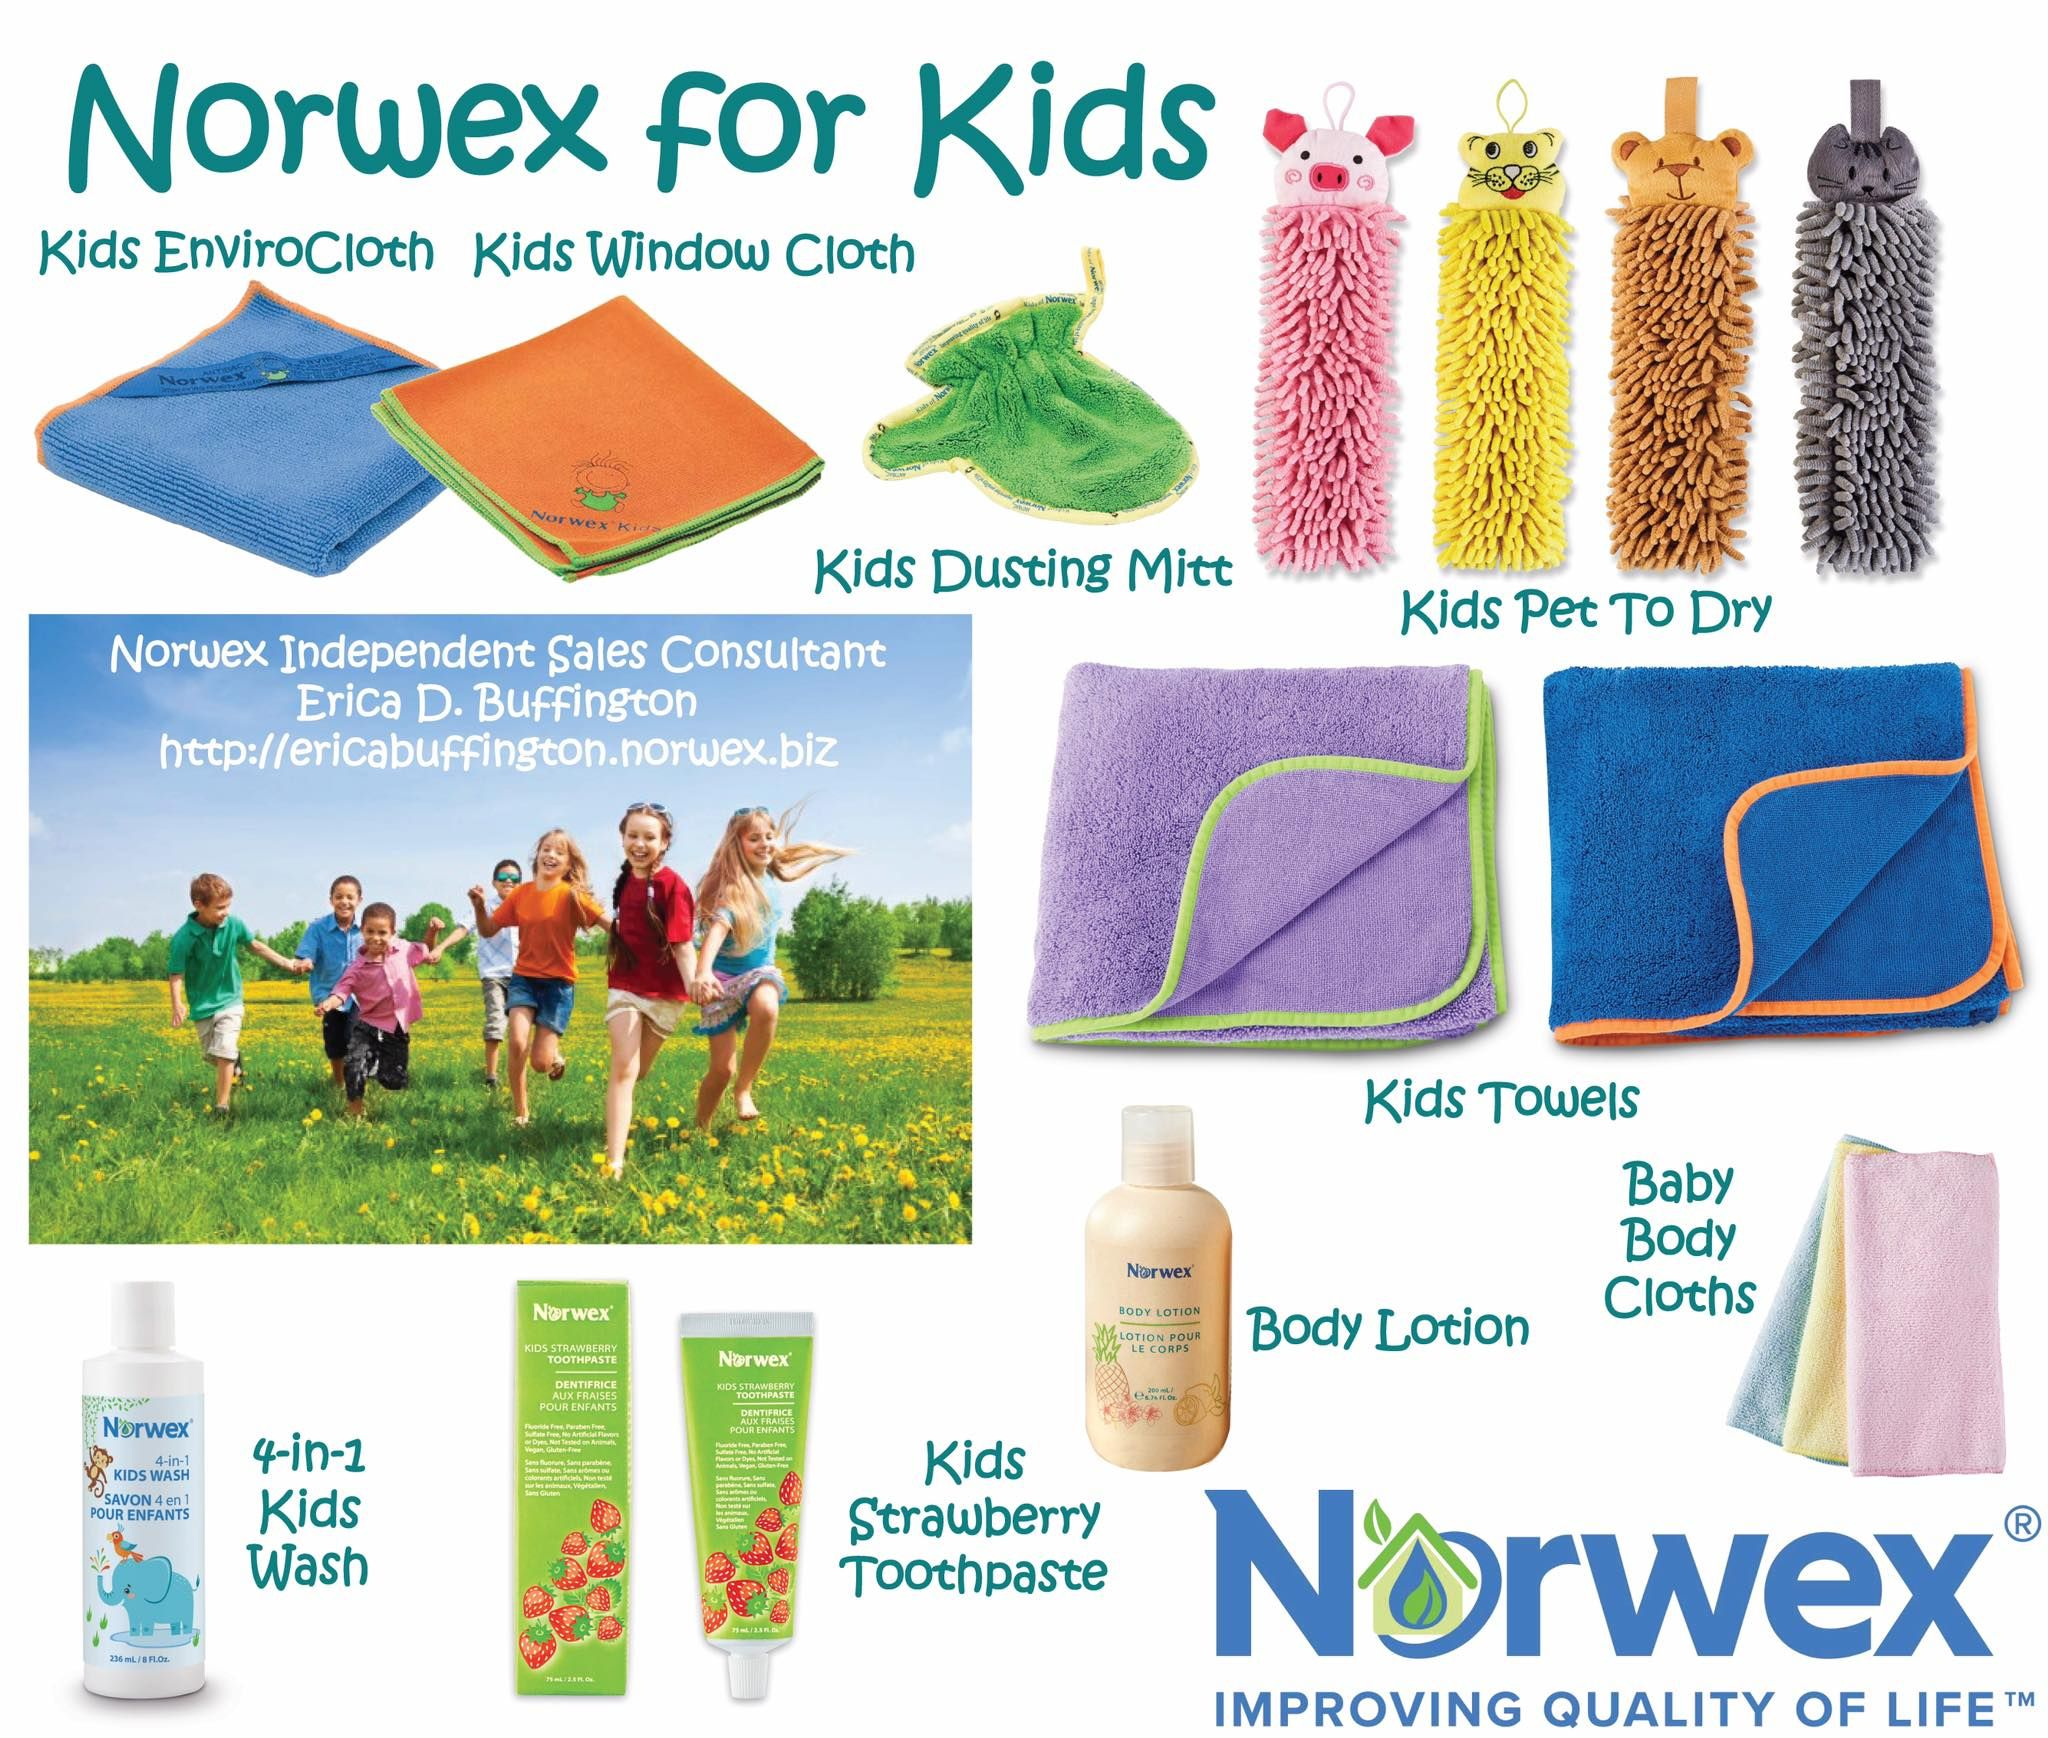 Norwex Cleaning Products: Norwex Has So Many Kid Friendly Items! Look How Cute The